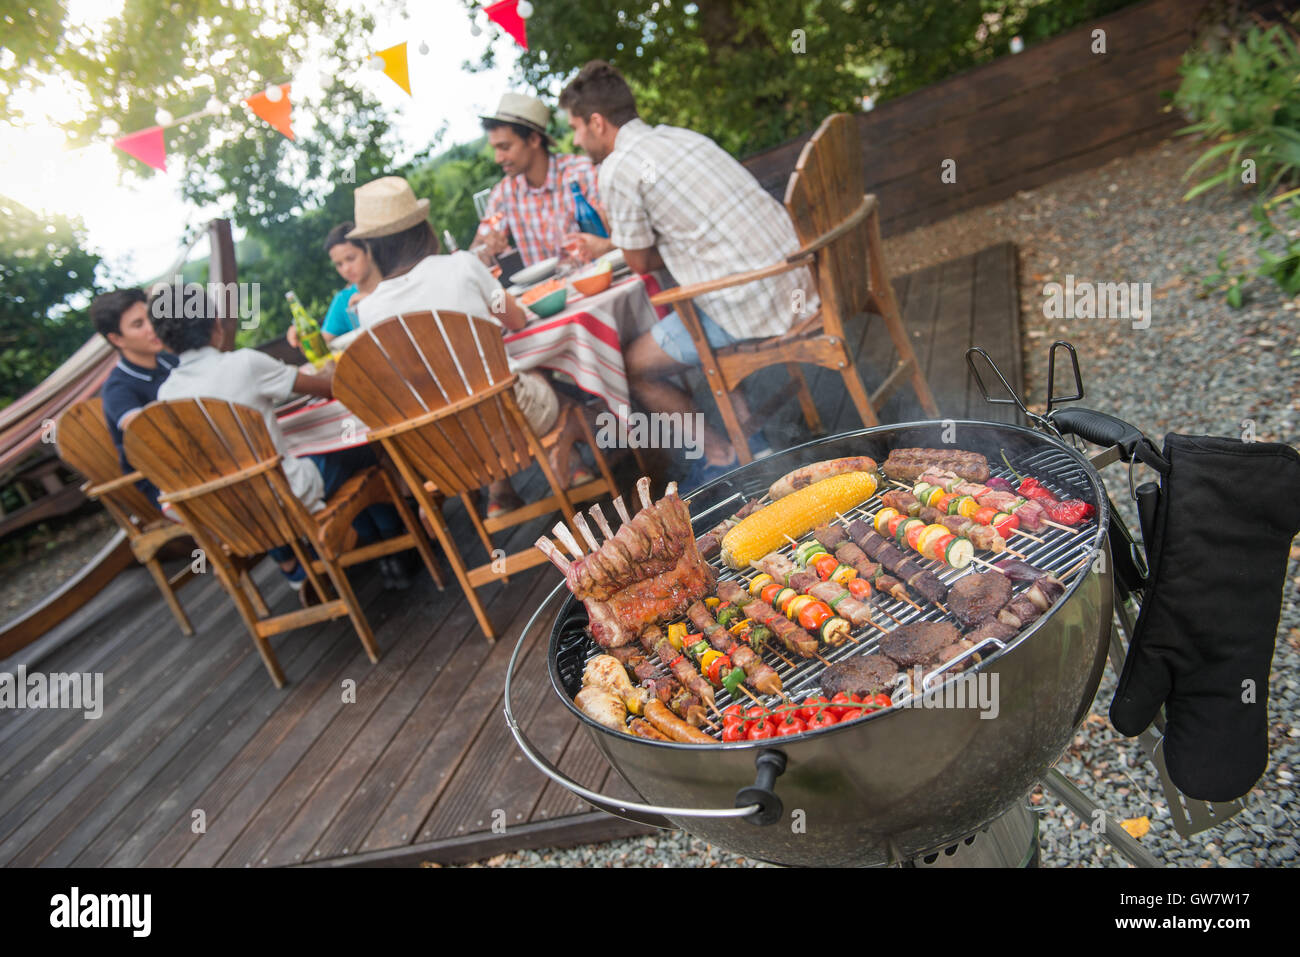 man grilling meat on garden barbecue party in the background friends stock photo 118801907 alamy. Black Bedroom Furniture Sets. Home Design Ideas